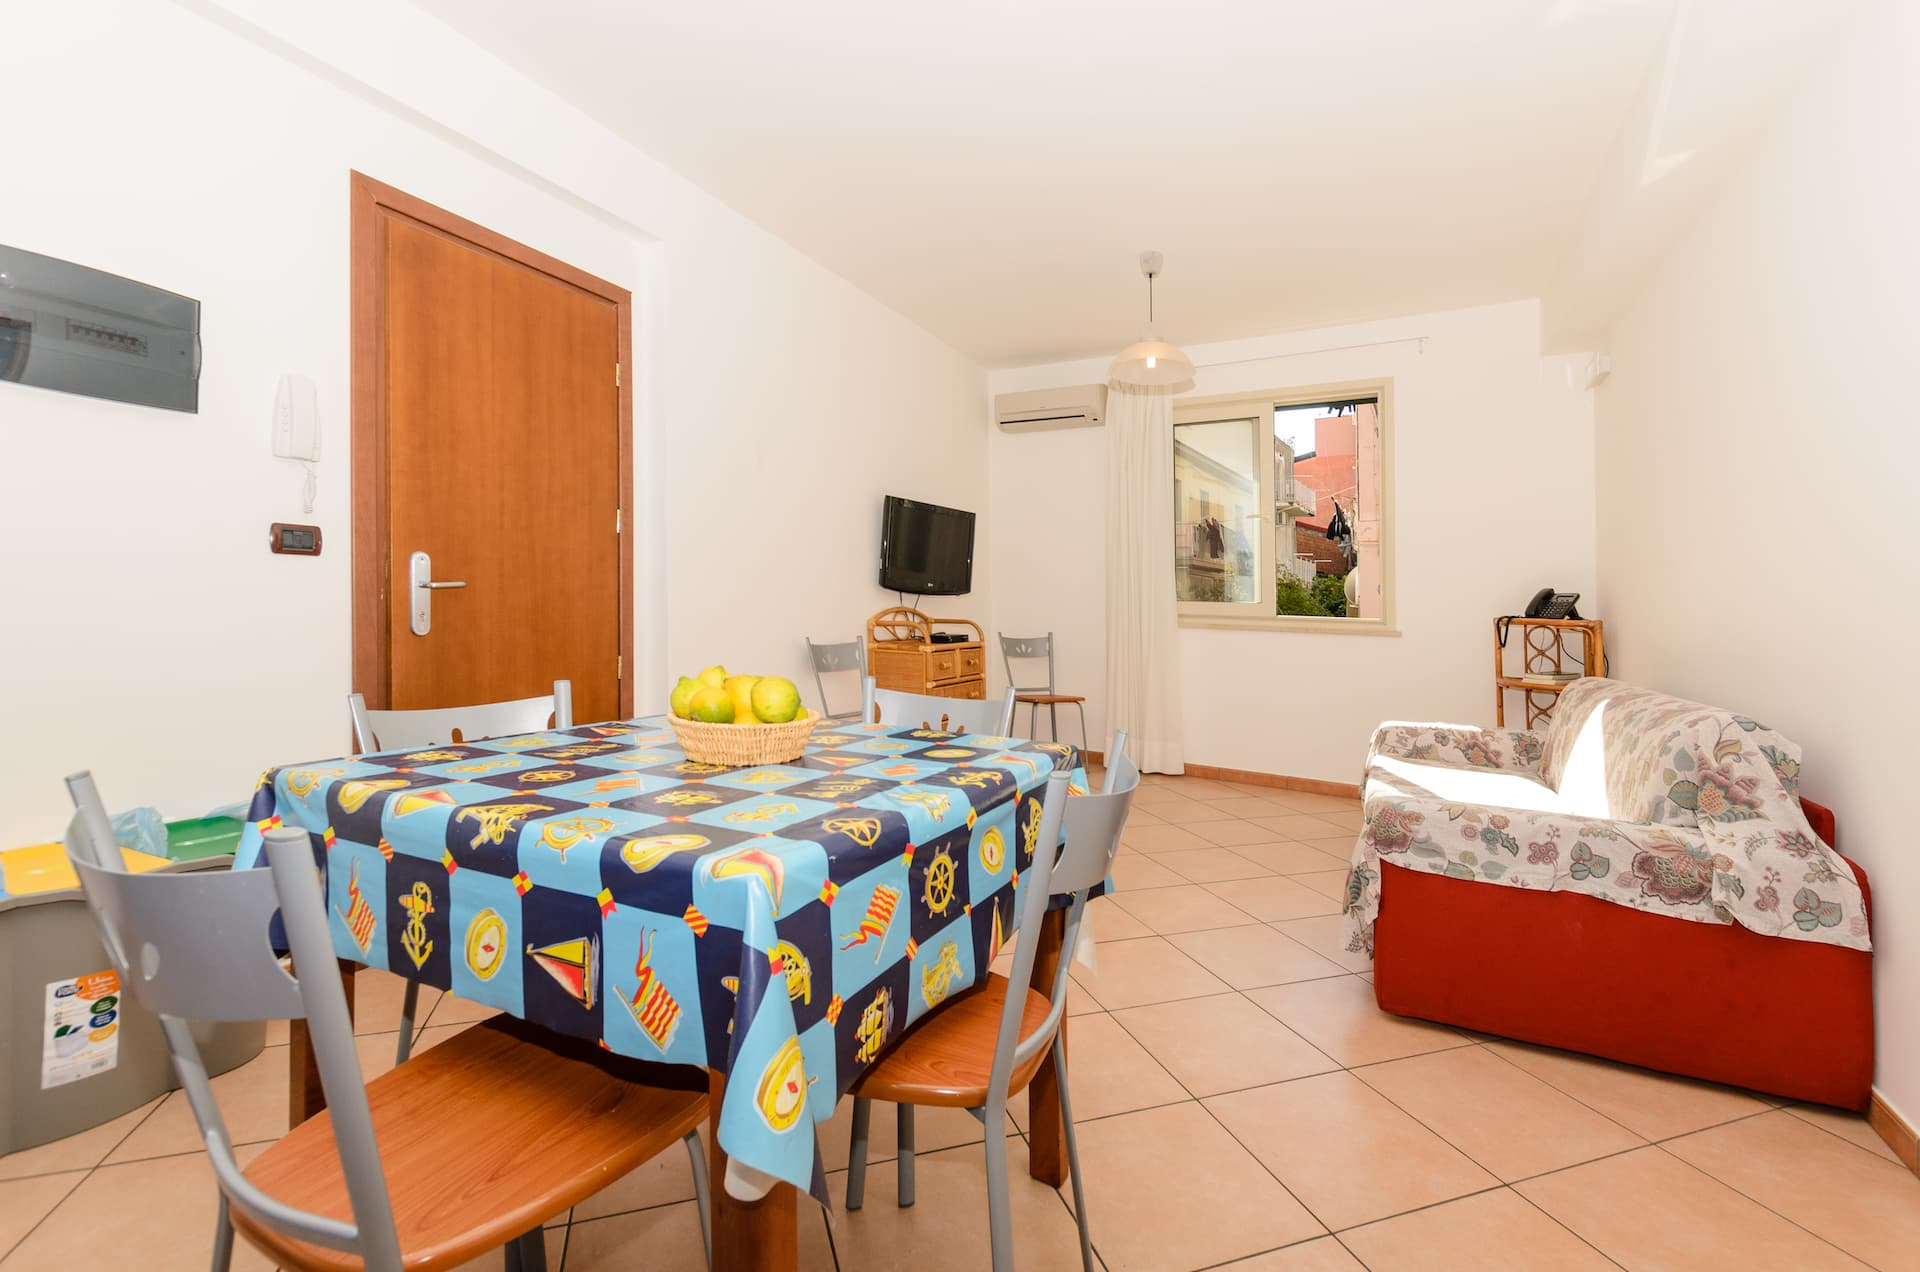 residence-le-tartarughe-appartamento-gallery-2